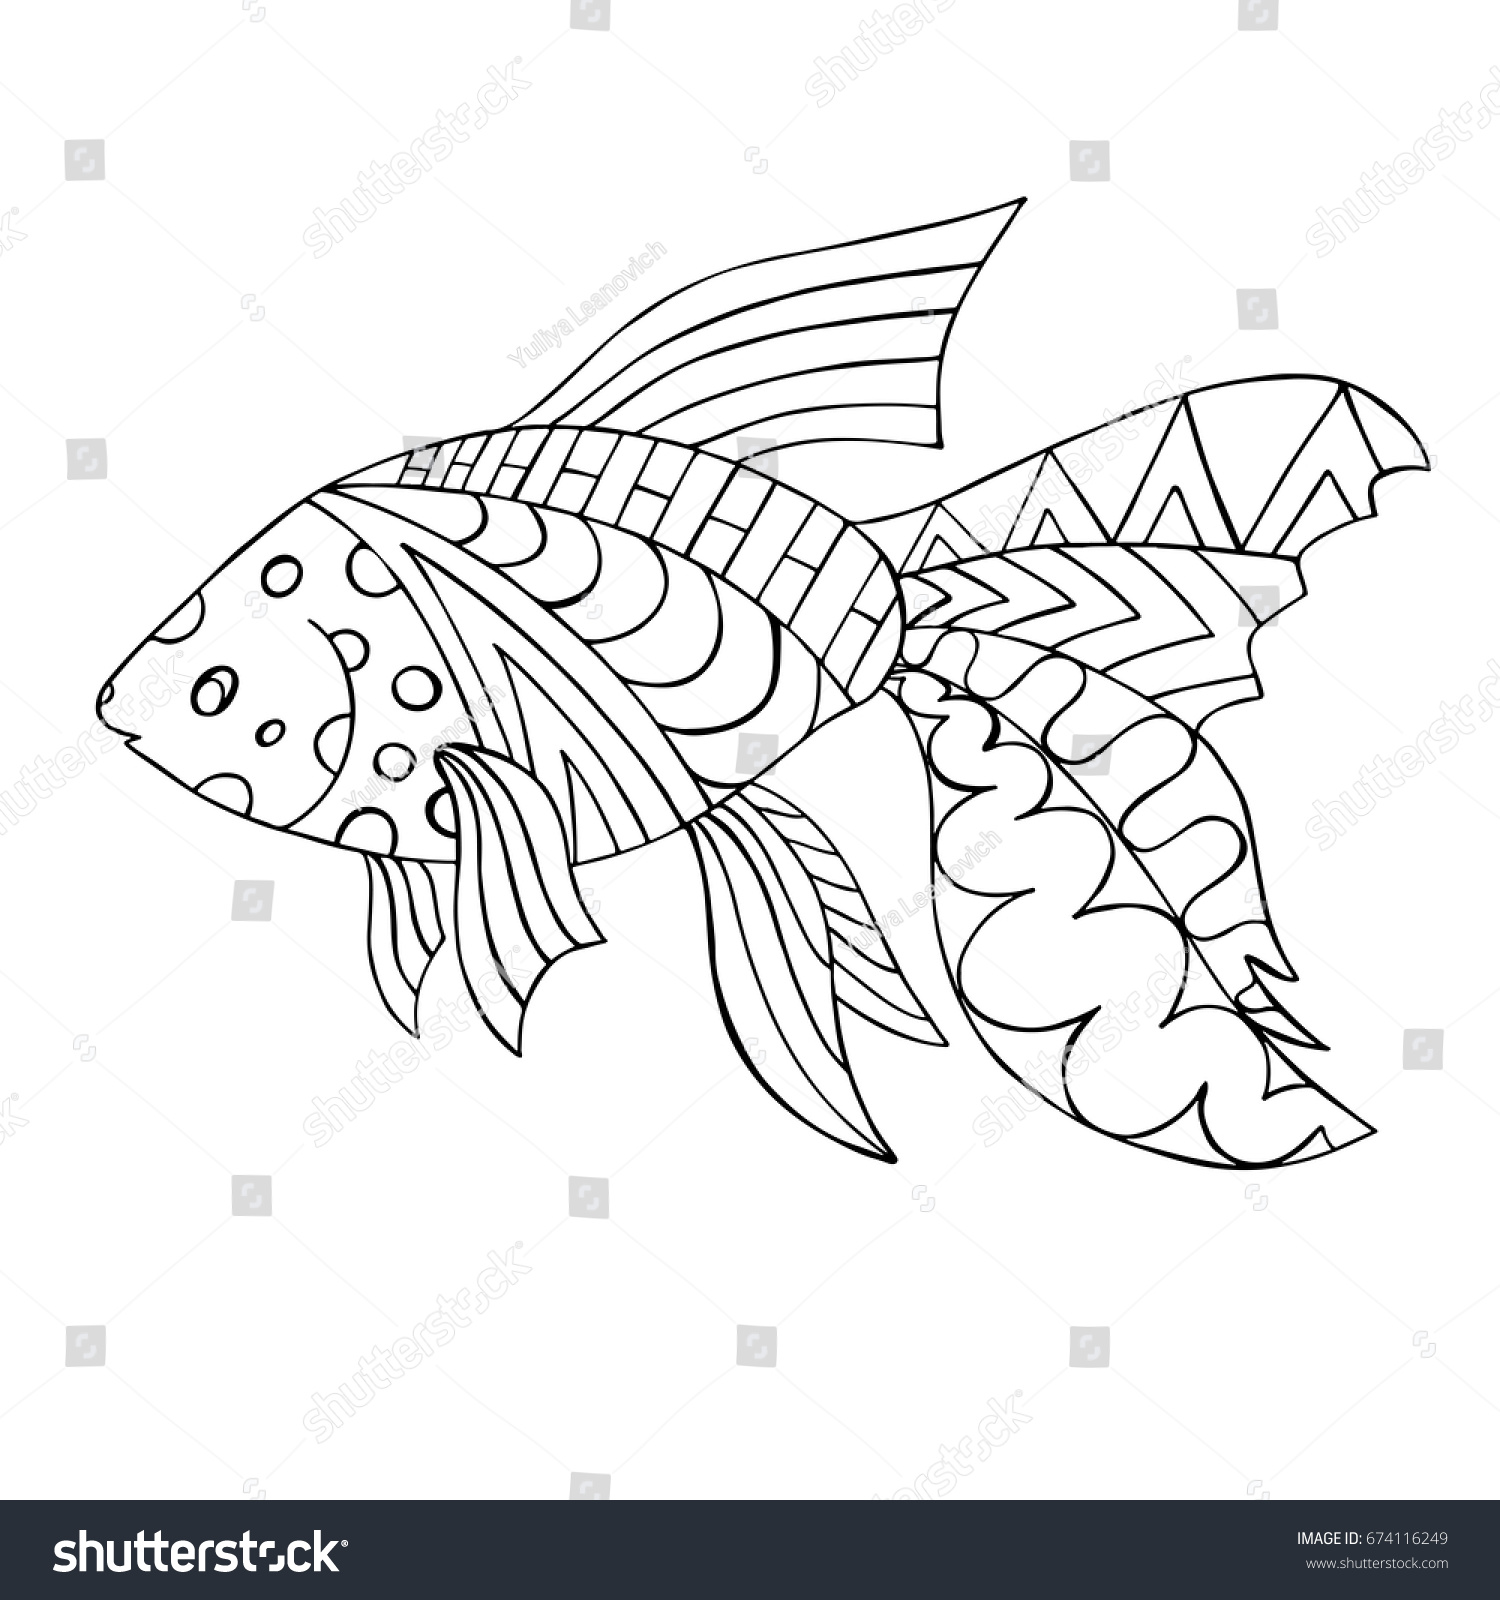 Goldfish Zentangle Fish For Coloring Page Adult Antistress Vector Illustration